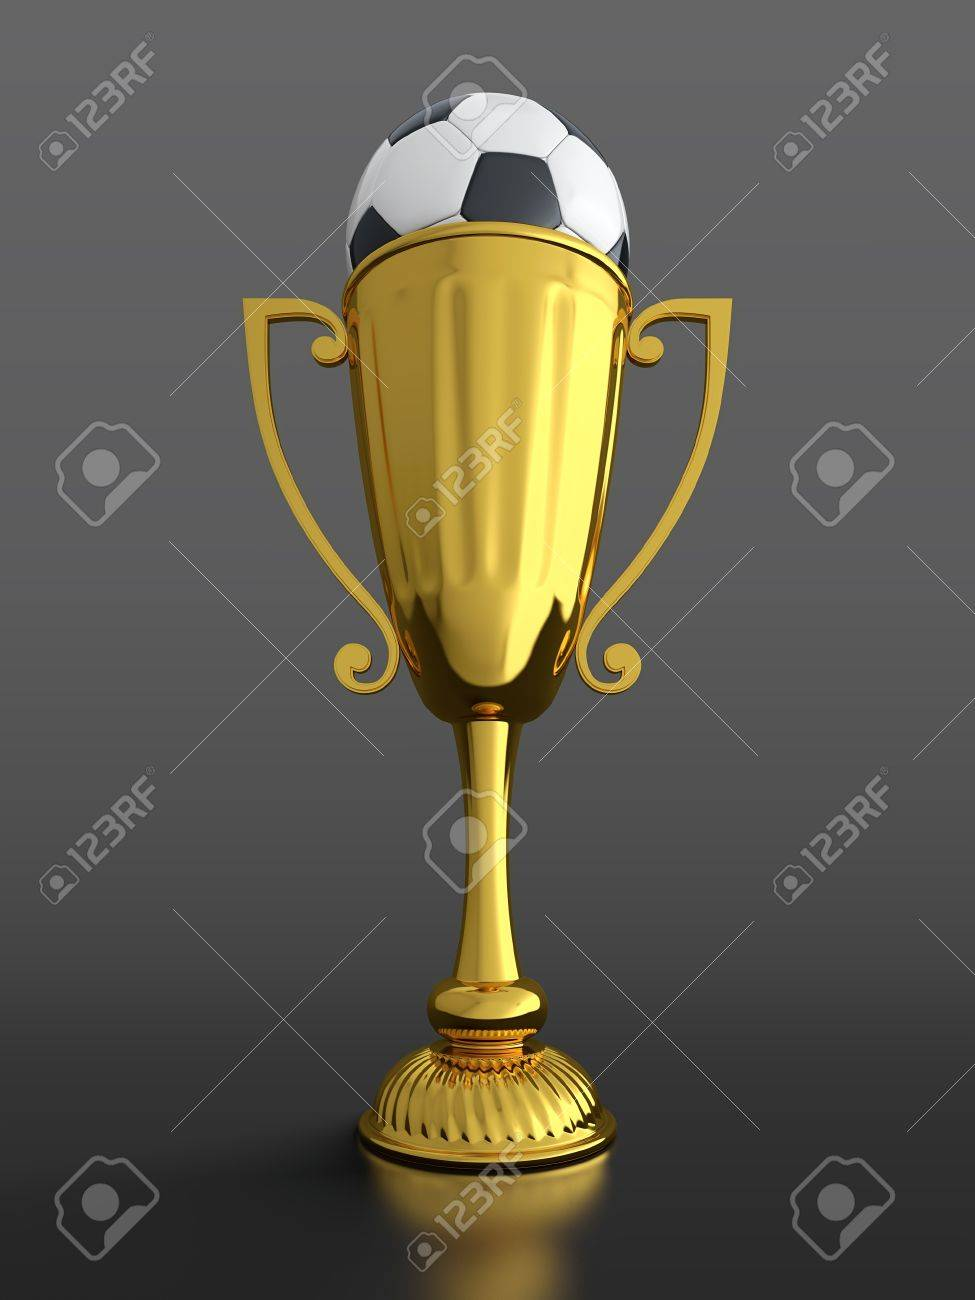 3D Render Of Gold Trophy Cup With Soccer Ball On Black Background Stock Photo